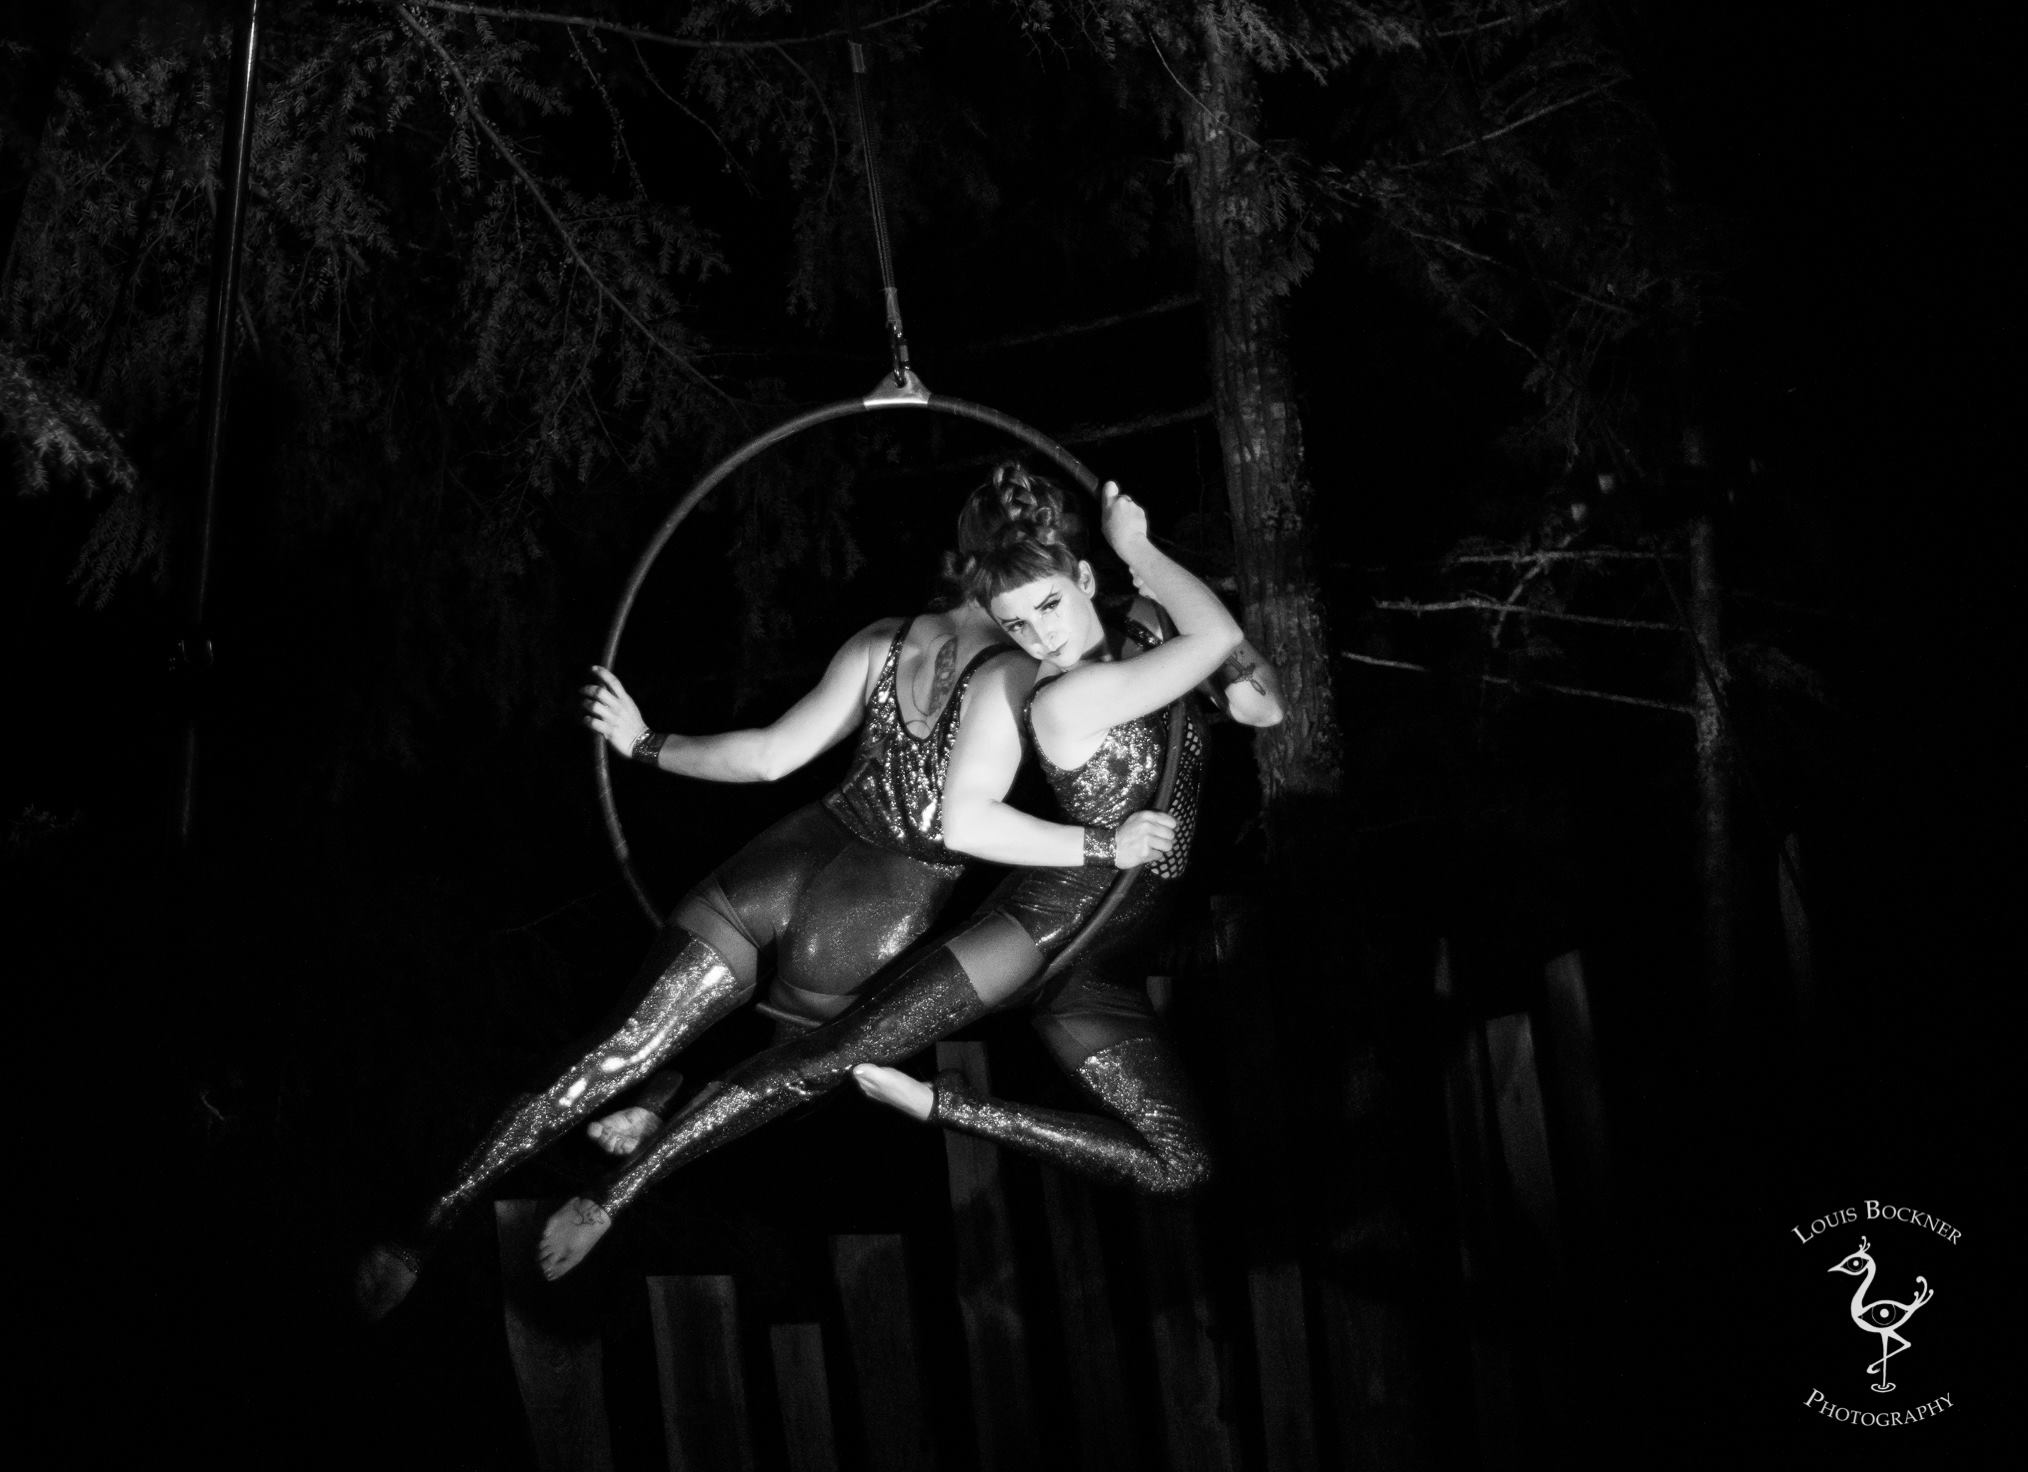 aerial arts - Be awed by our aerialists, choose from a multitude of acts: solo and duo lyra, silks, and dance trapeze.